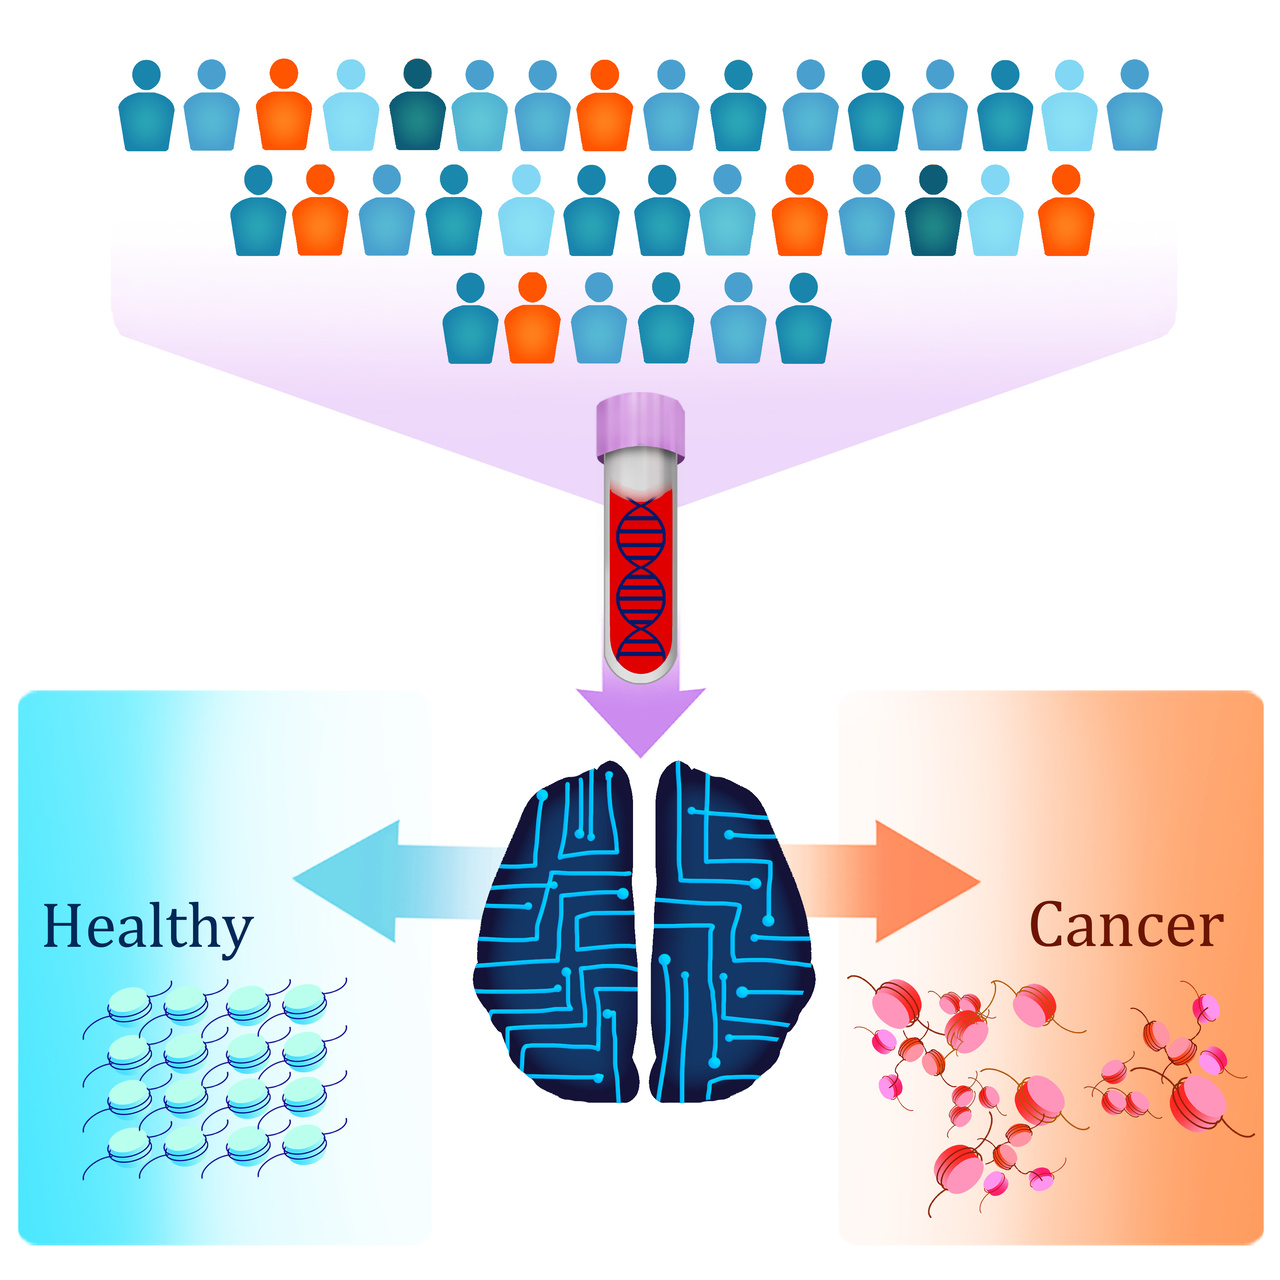 5-29-19  Johns Hopkins Researchers Design New Blood Test That Uses DNA 'Packaging' Patterns to Detect Multiple Cancer Types.jpg